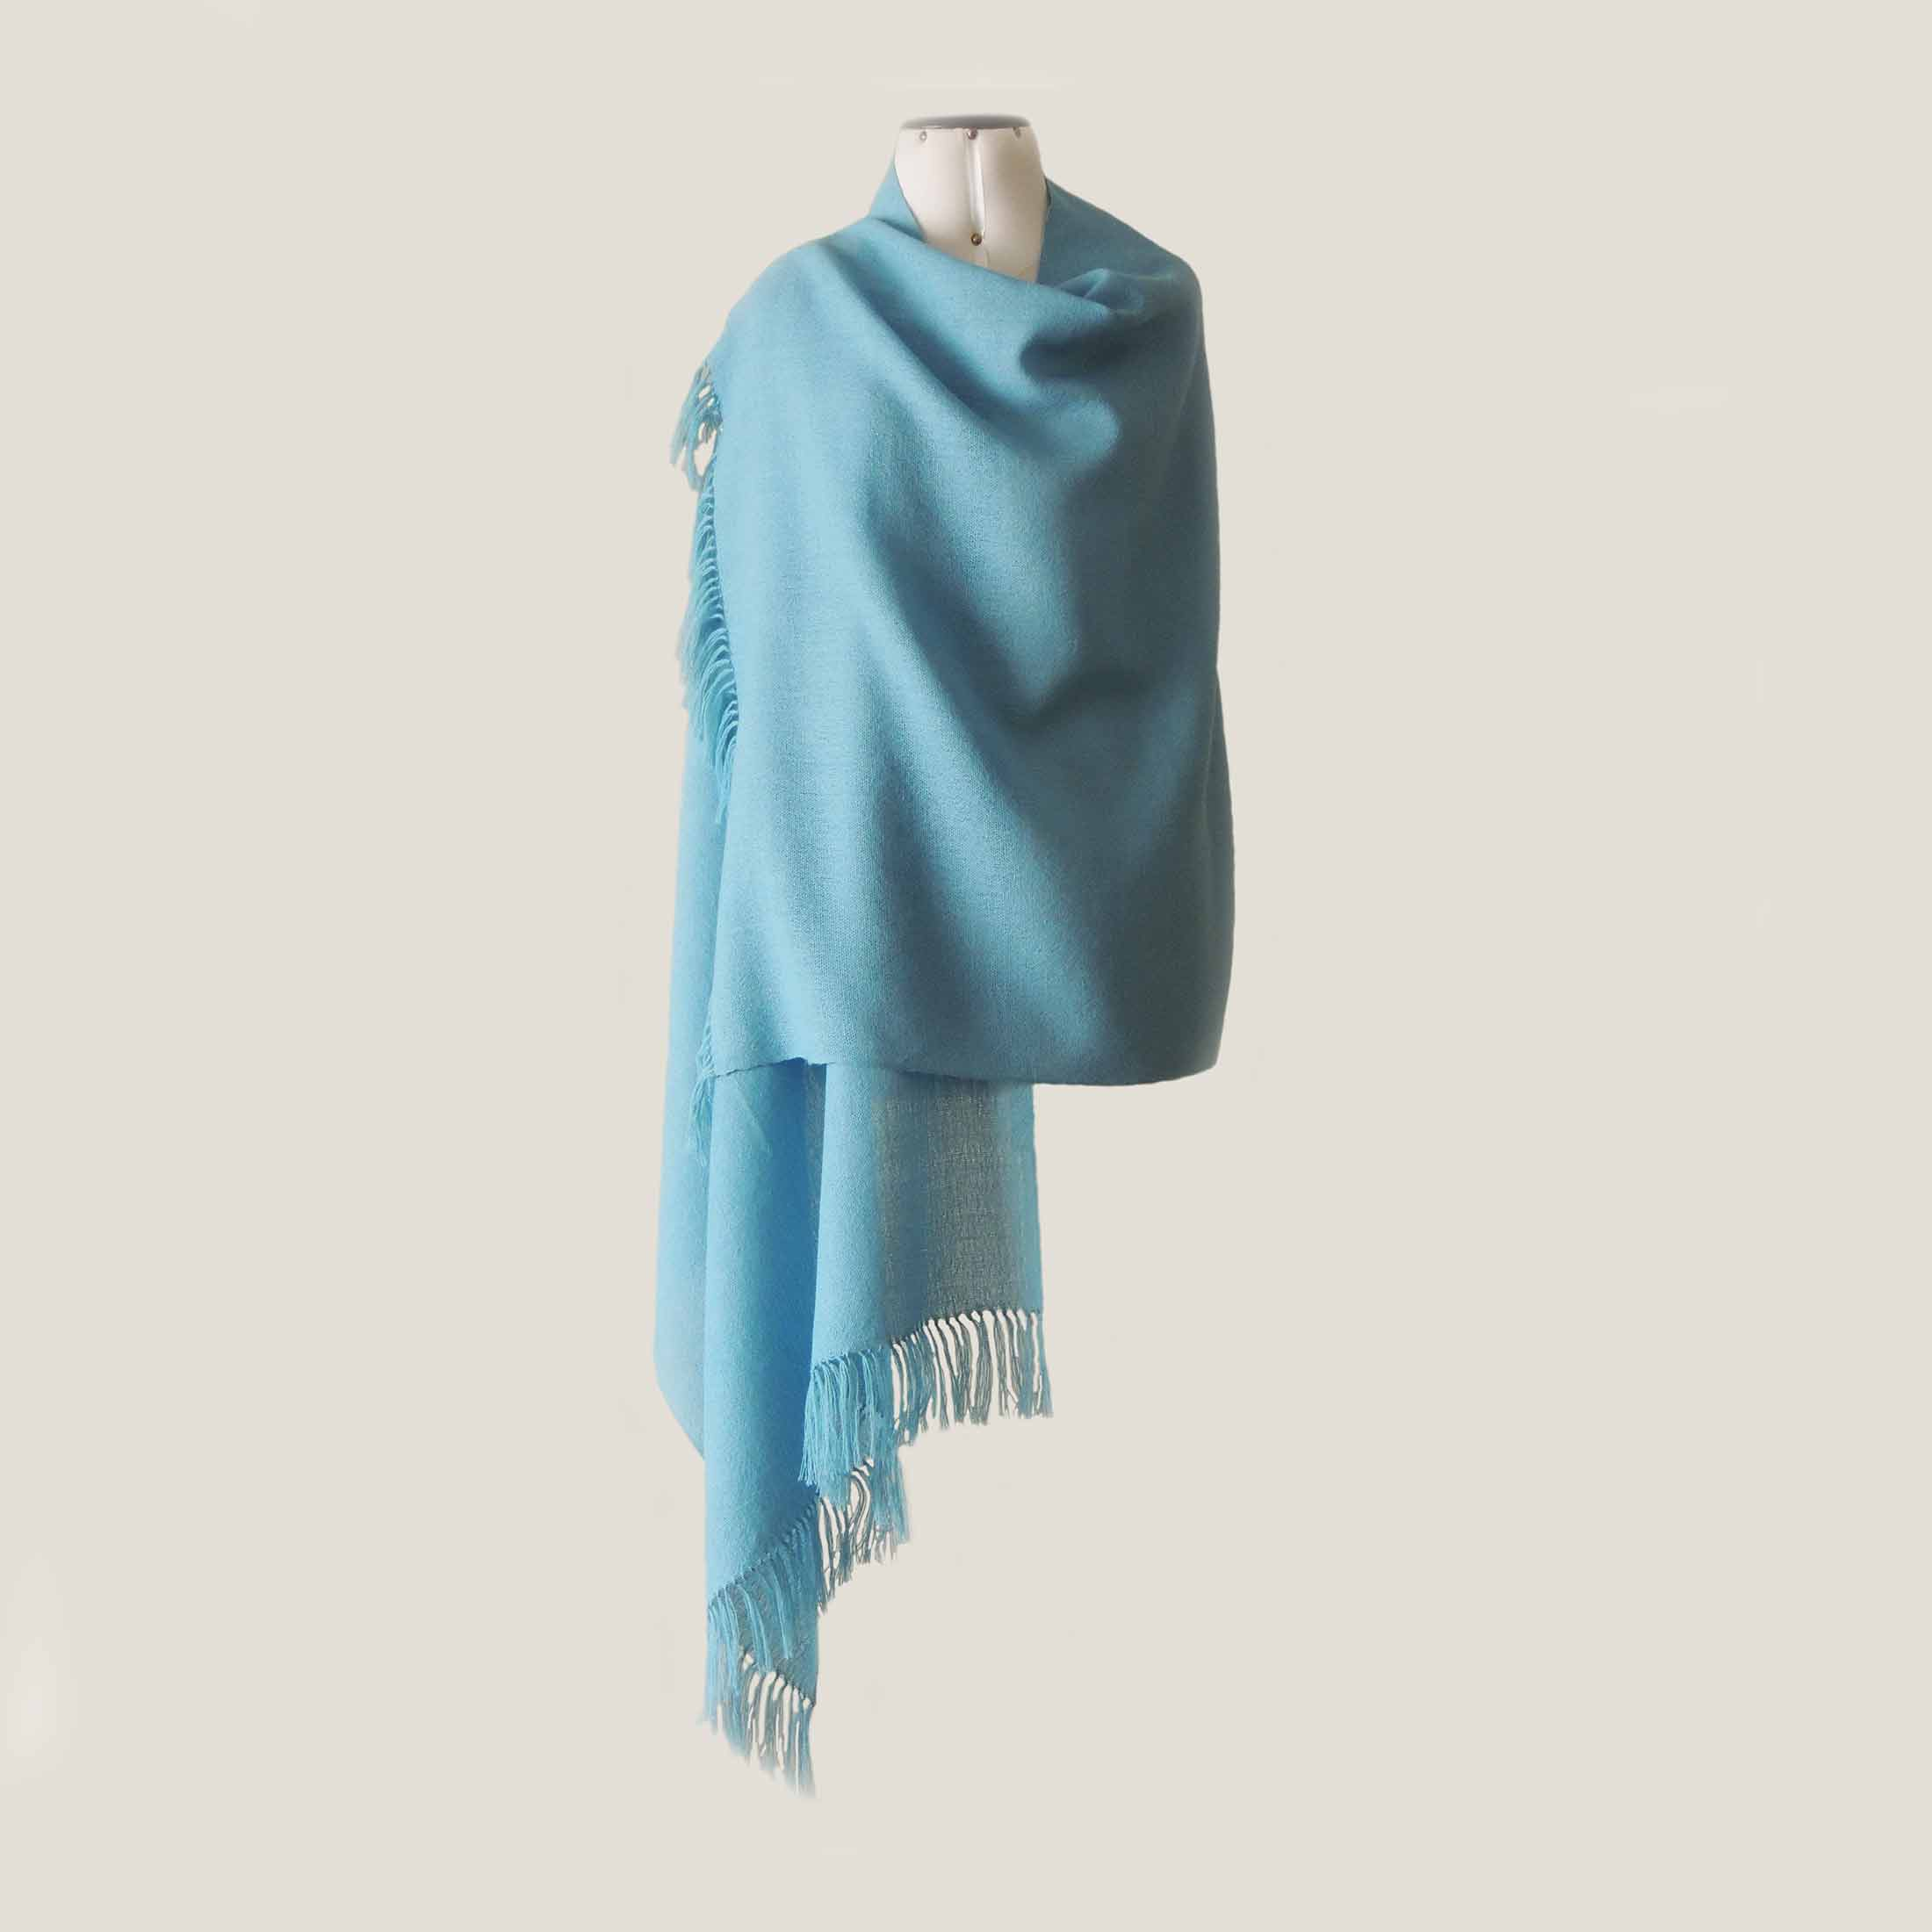 PFL knitwear Fine handwoven Shawl / Stole, in soft baby alpaca with fringes solid color light blue